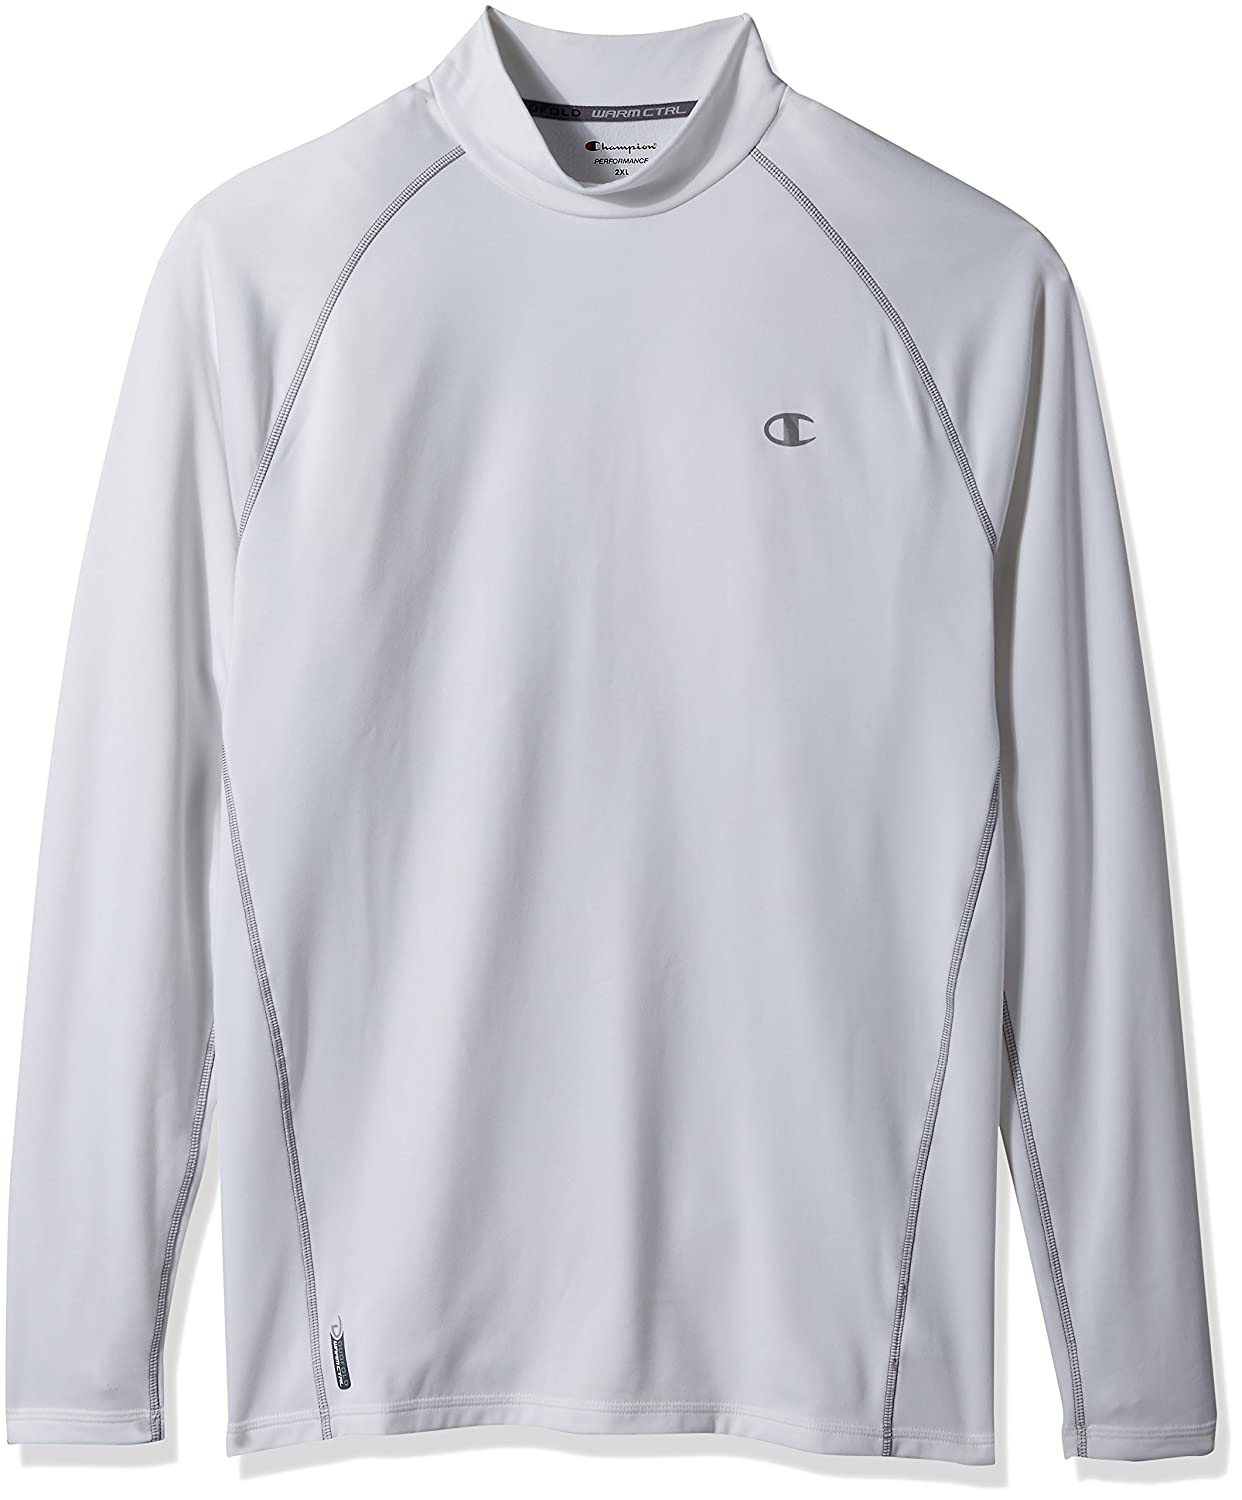 9862a59a Amazon.com: Champion Cold Weather Long Sleeve Mock Neck Tee: Clothing